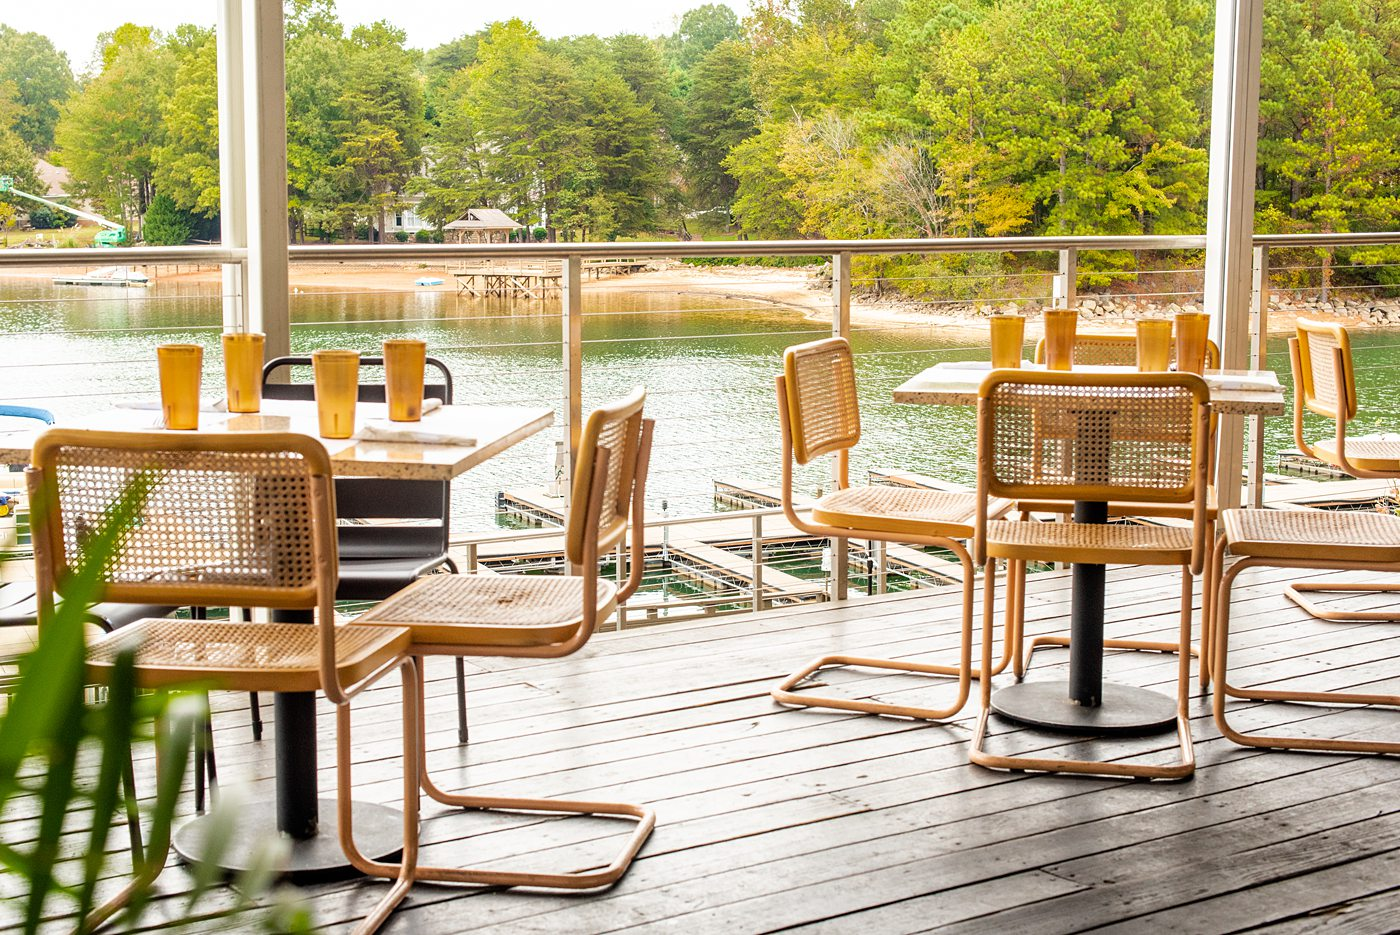 Best Lake Norman Waterfront Restaurants for the view, food and cocktails near Charlotte, North Carolina. Hello, Sailor, Port City Club and North Harbor Club. #sometimeshome #lakenorman #NorthCarolina